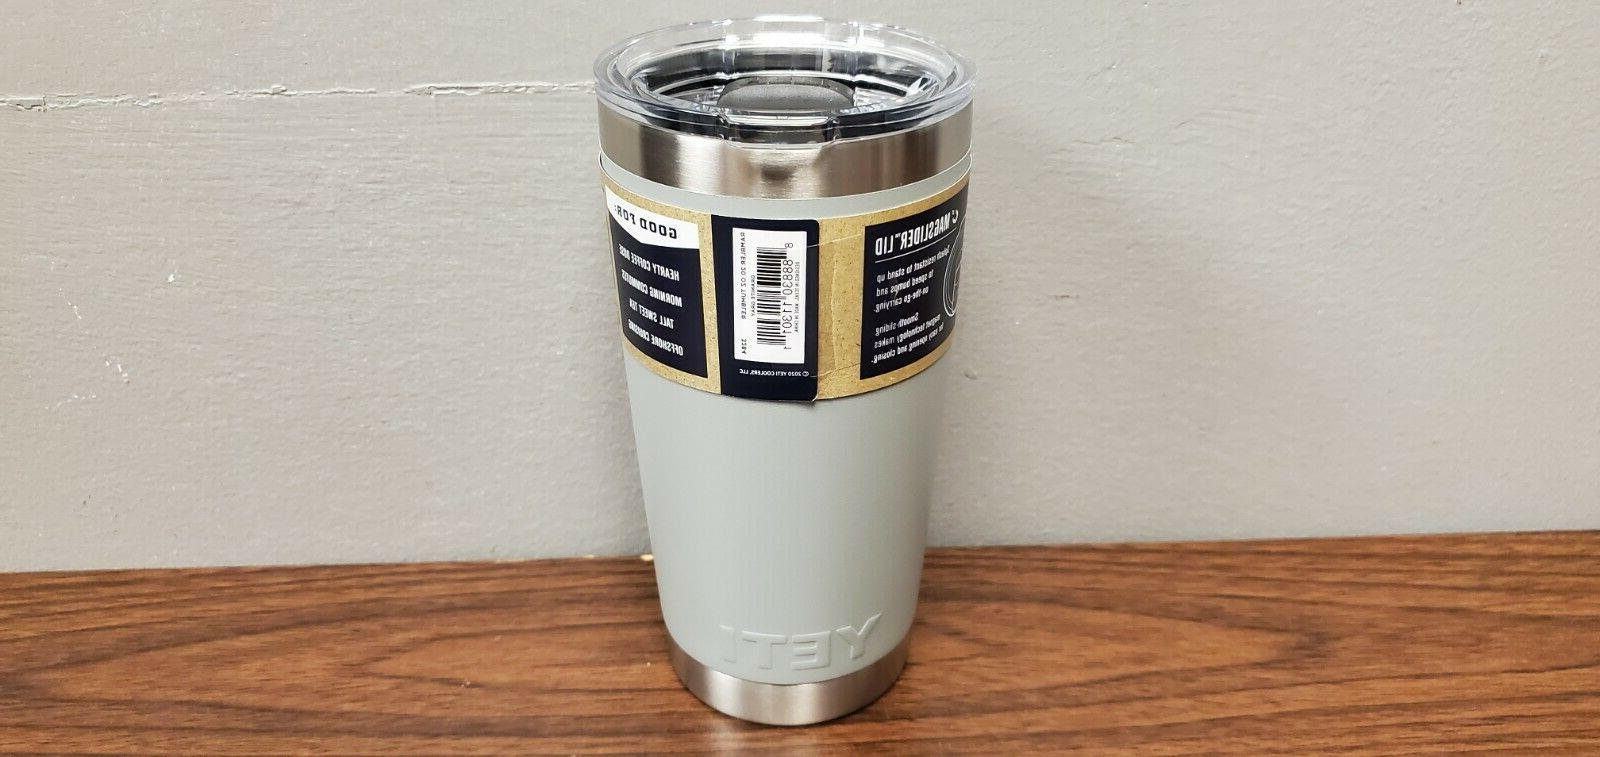 Starbucks Stainless Steel Water Bottle 20 oz Matte Black Dou